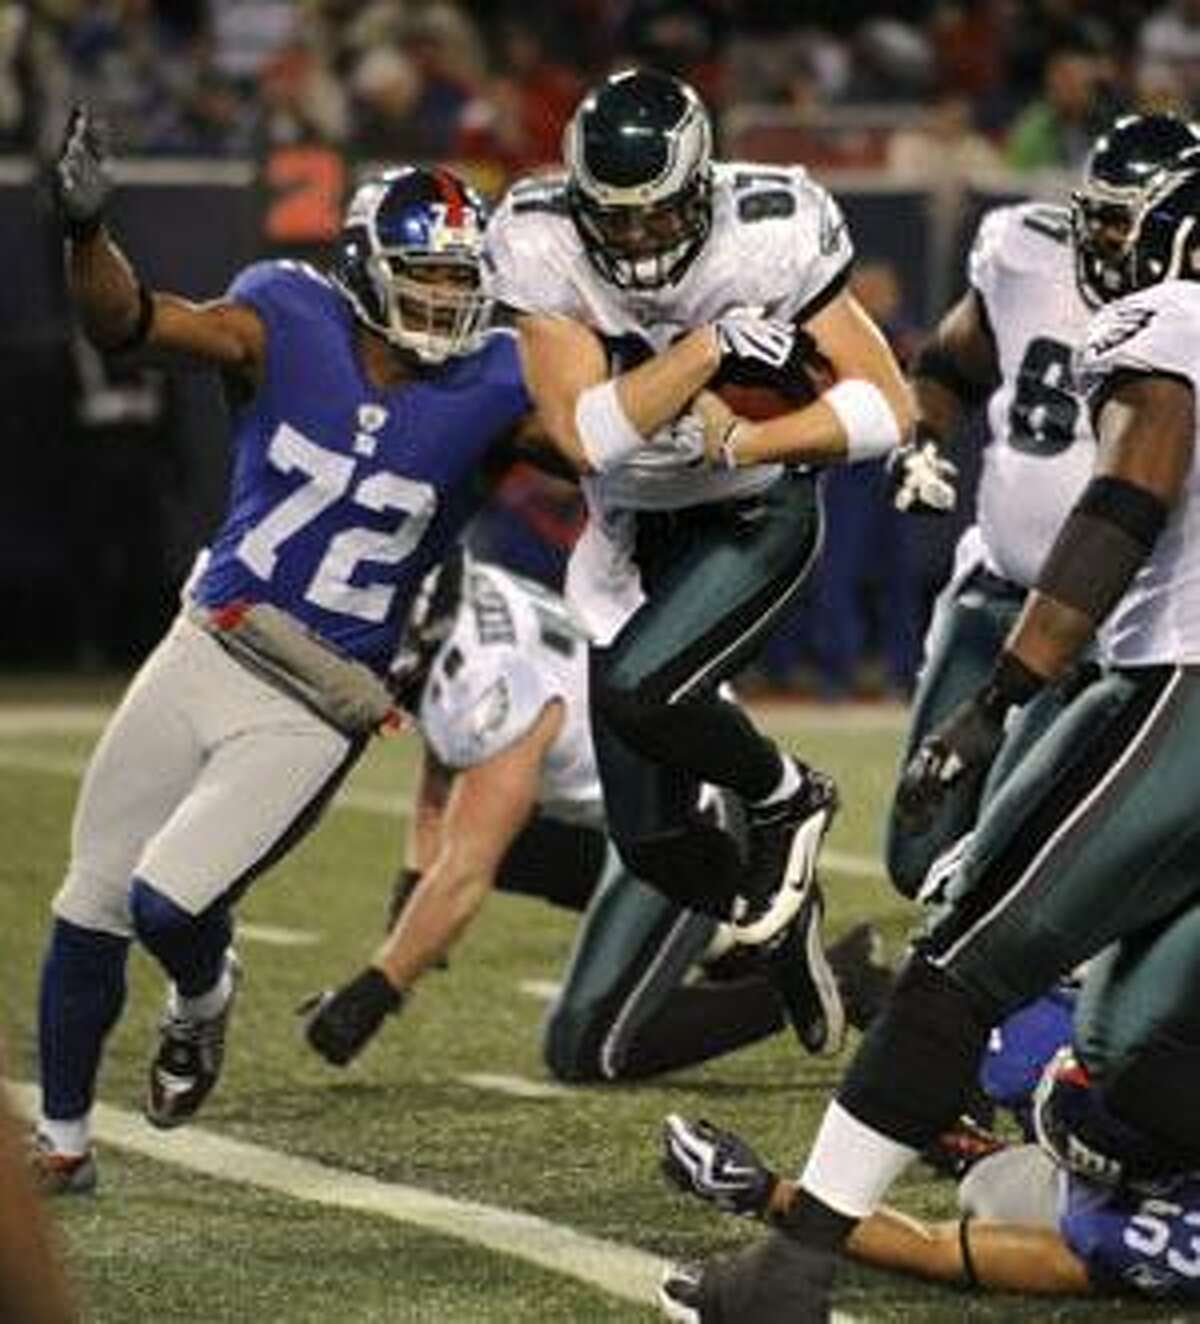 Philadelphia Eagles tight end Brent Celek (87) crosses the goal line to score a touchdown as New York Giants defensive end Osi Umenyiora (72) comes in late for the play Dec. 13 in East Rutherford, N.J.